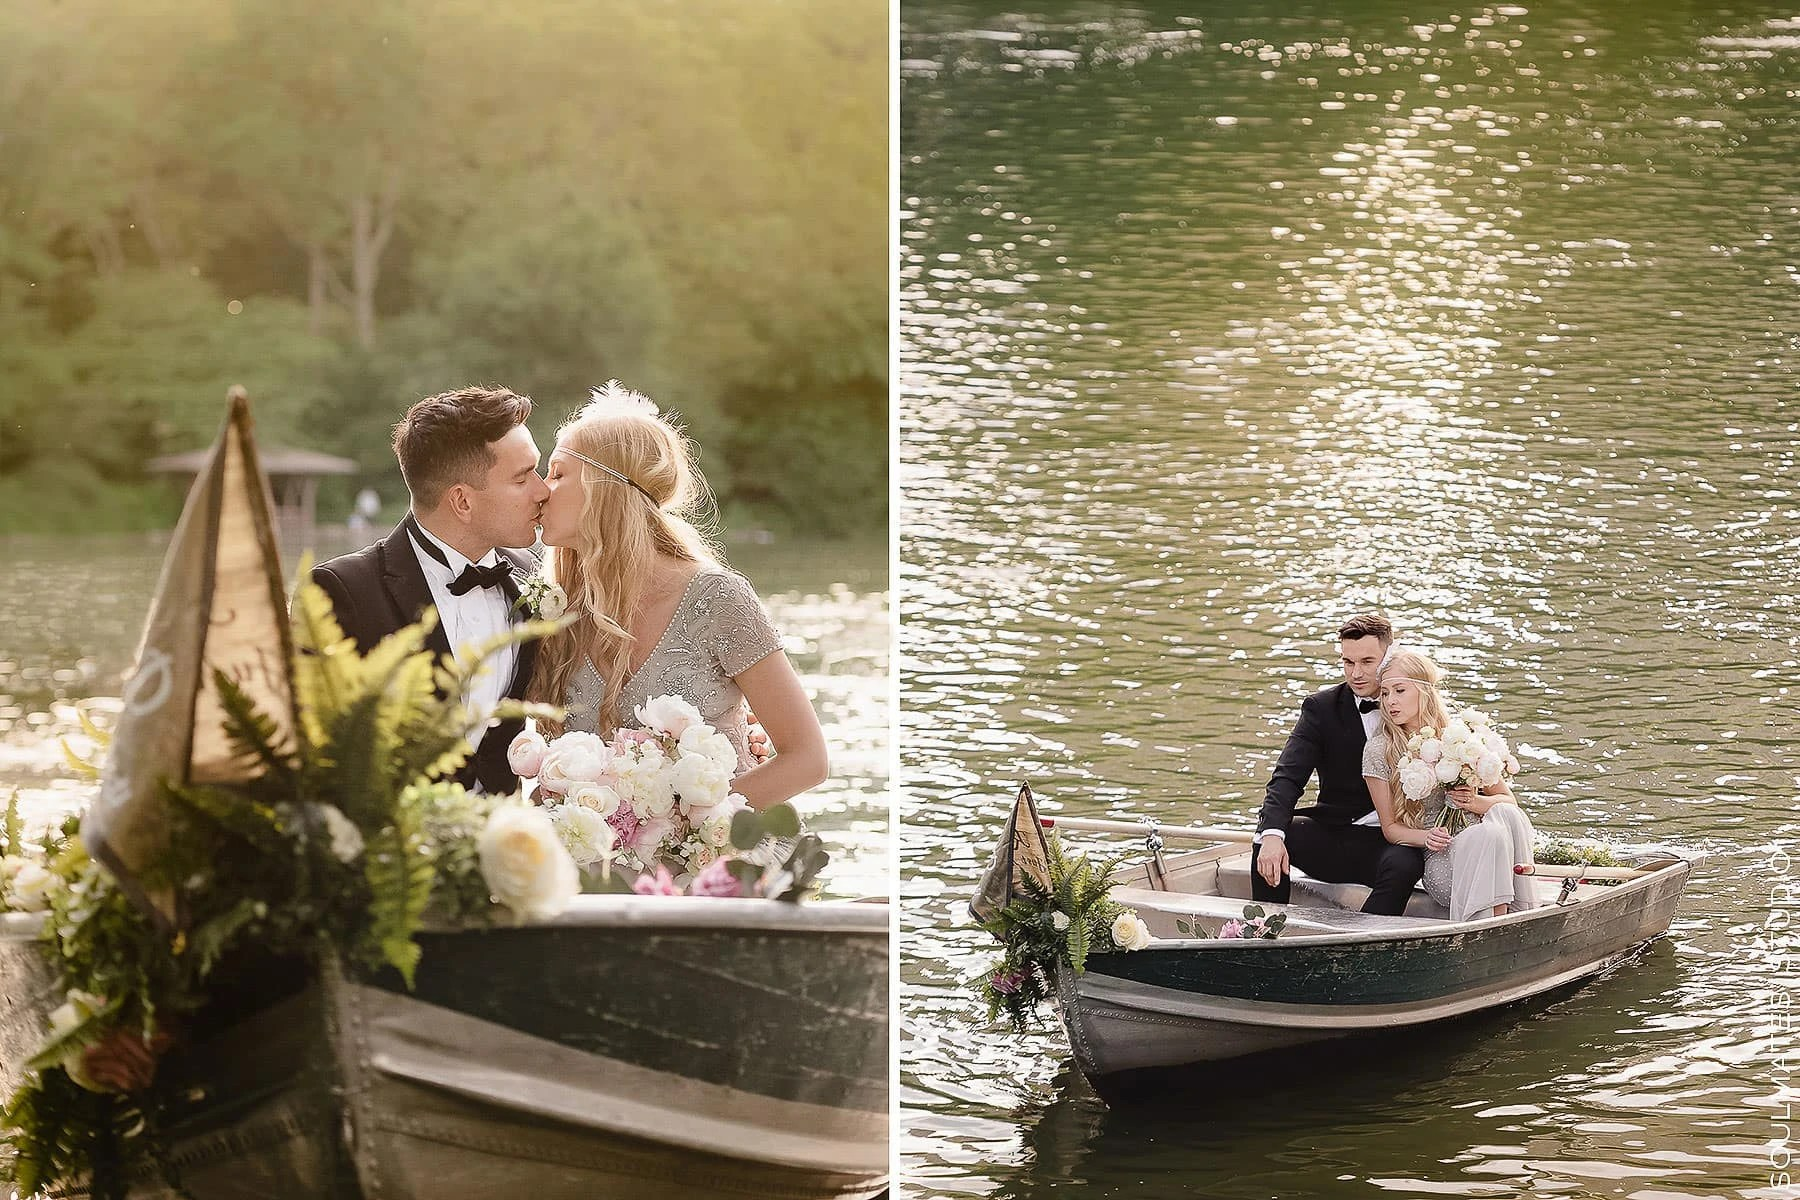 Bride and groom on the boat on The Lake in Central Park